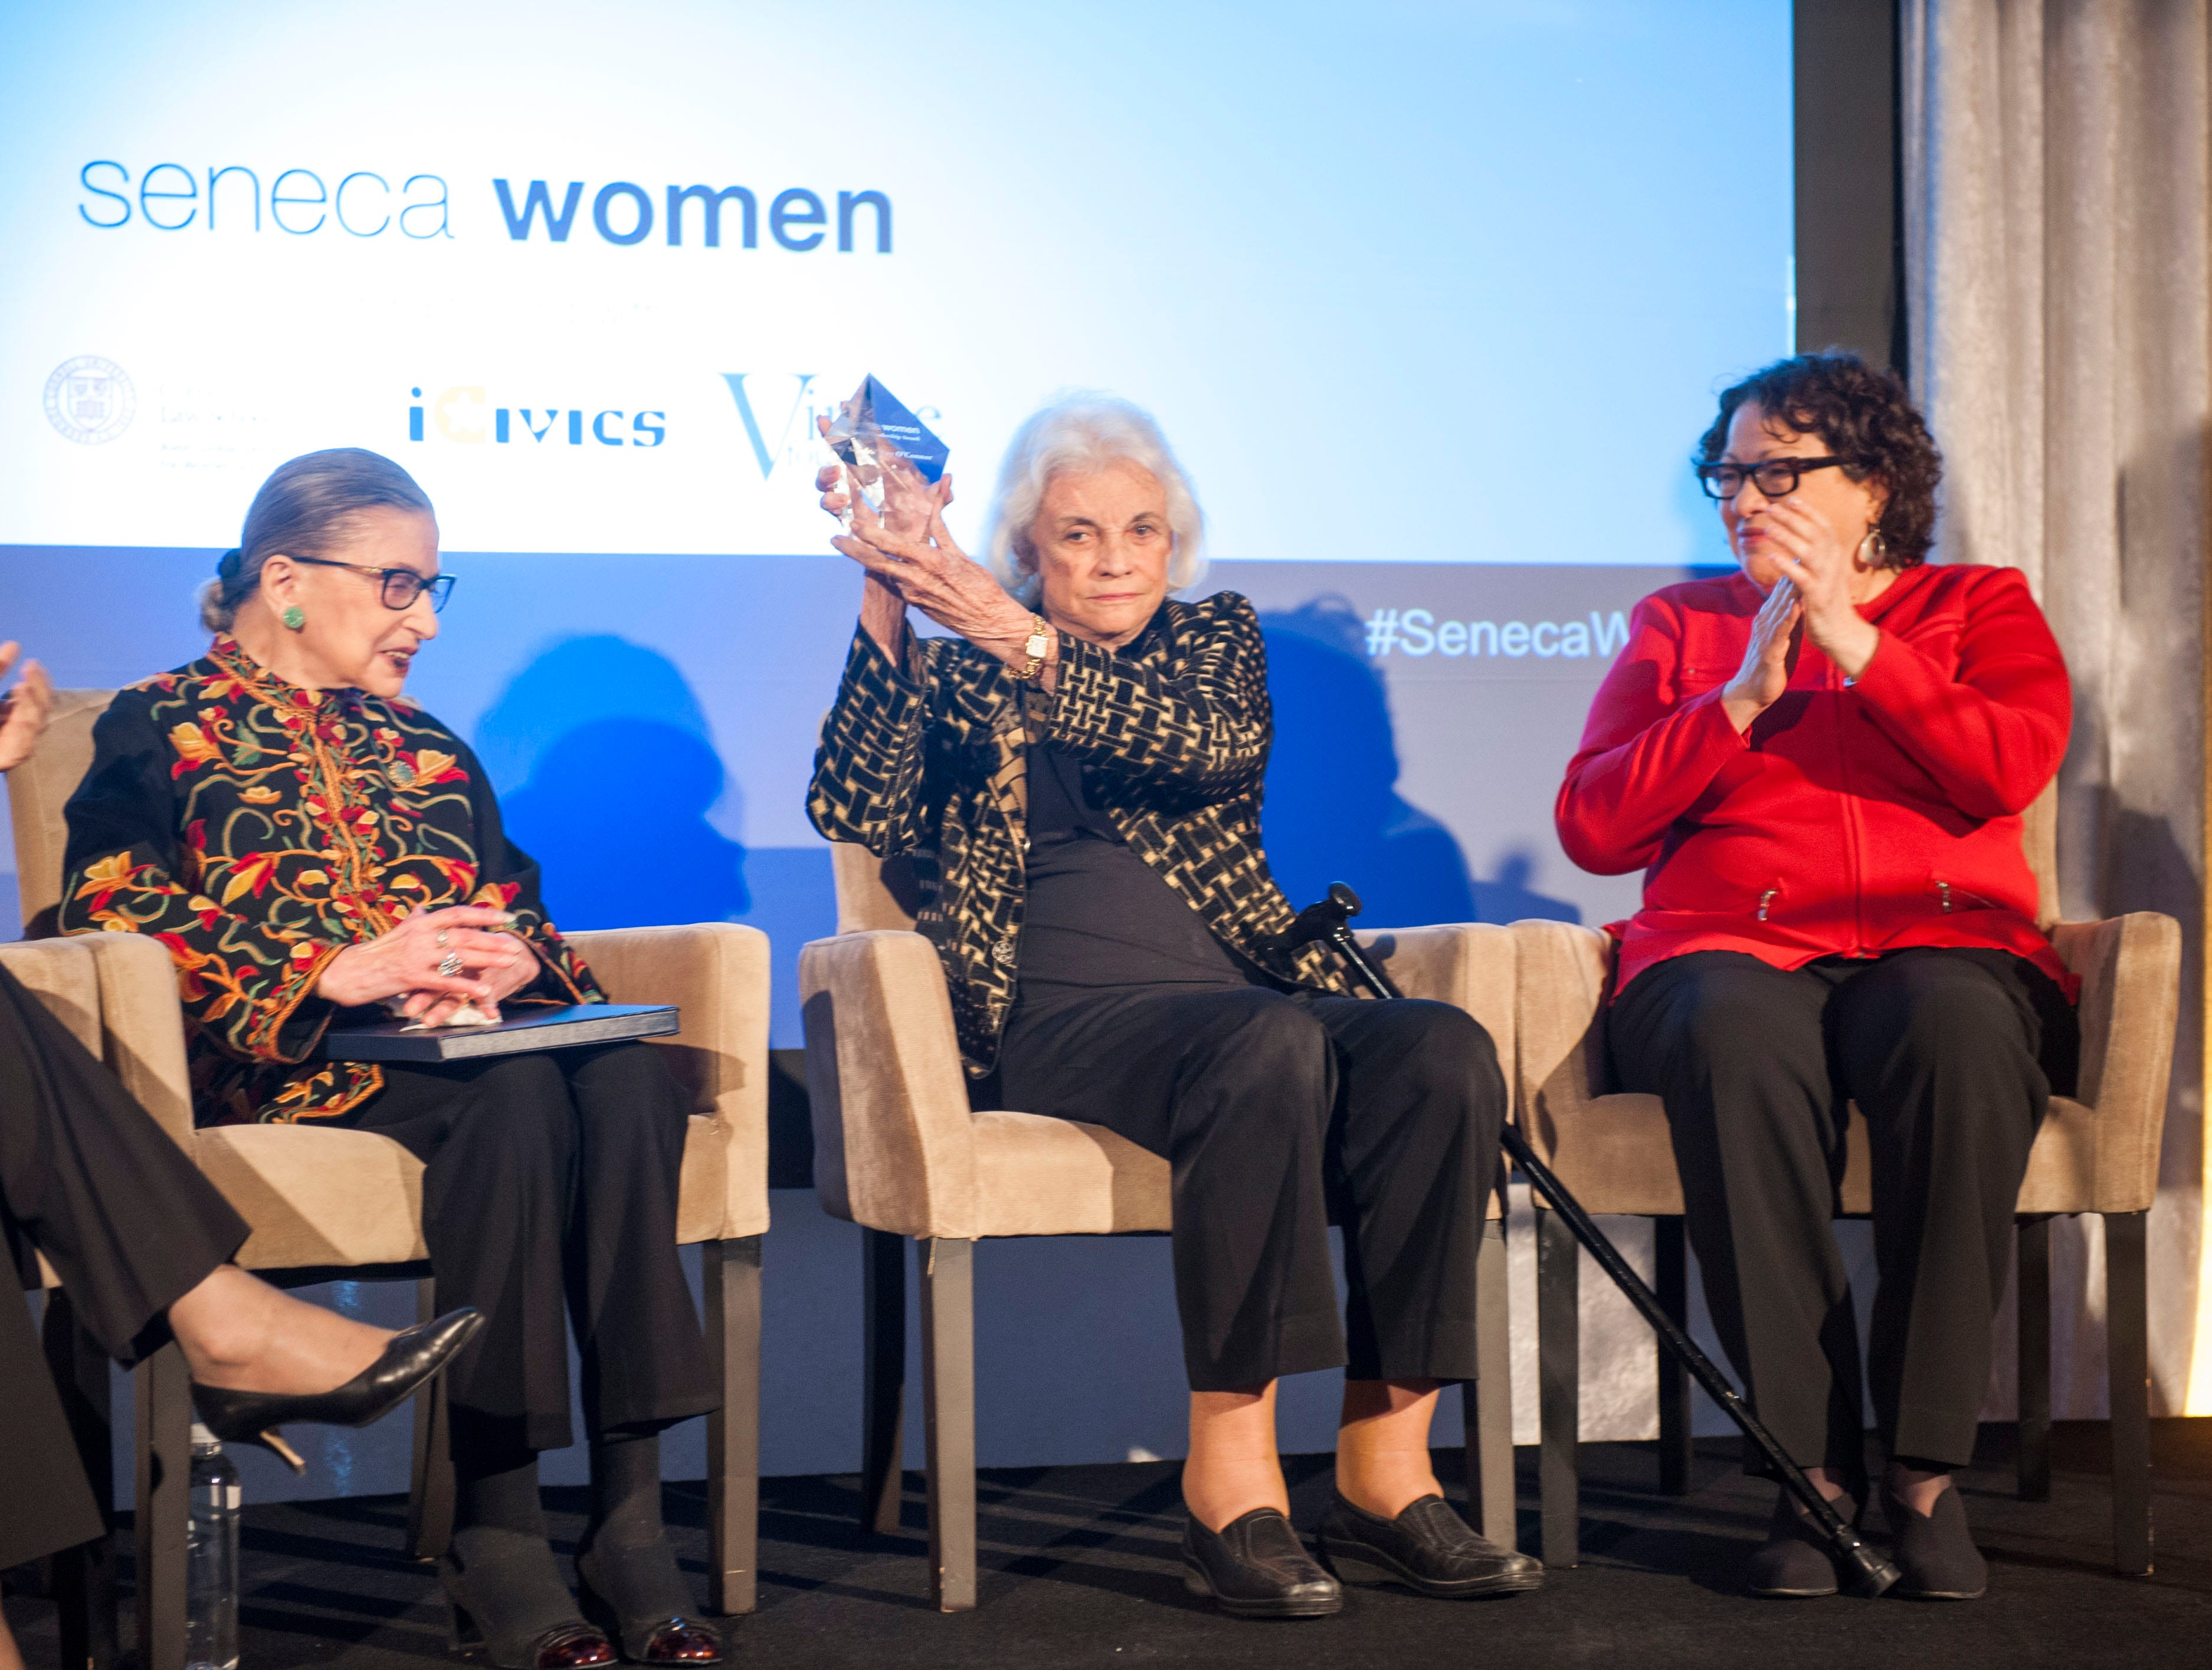 Justice Sandra Day O'Connor, center, holds her  Seneca Women Global Leadership Award as she sits with Supreme Court Justices Ruth Bader Ginsburg, and Sonia Sotomayor at the Seneca Women Global Leadership Forum on April 15, 2015 at the National Museum of Women in the Arts in Washington. O'Connor was honored for her advocacy work for civic education, impact on female judges and justice for women and girls worldwide.